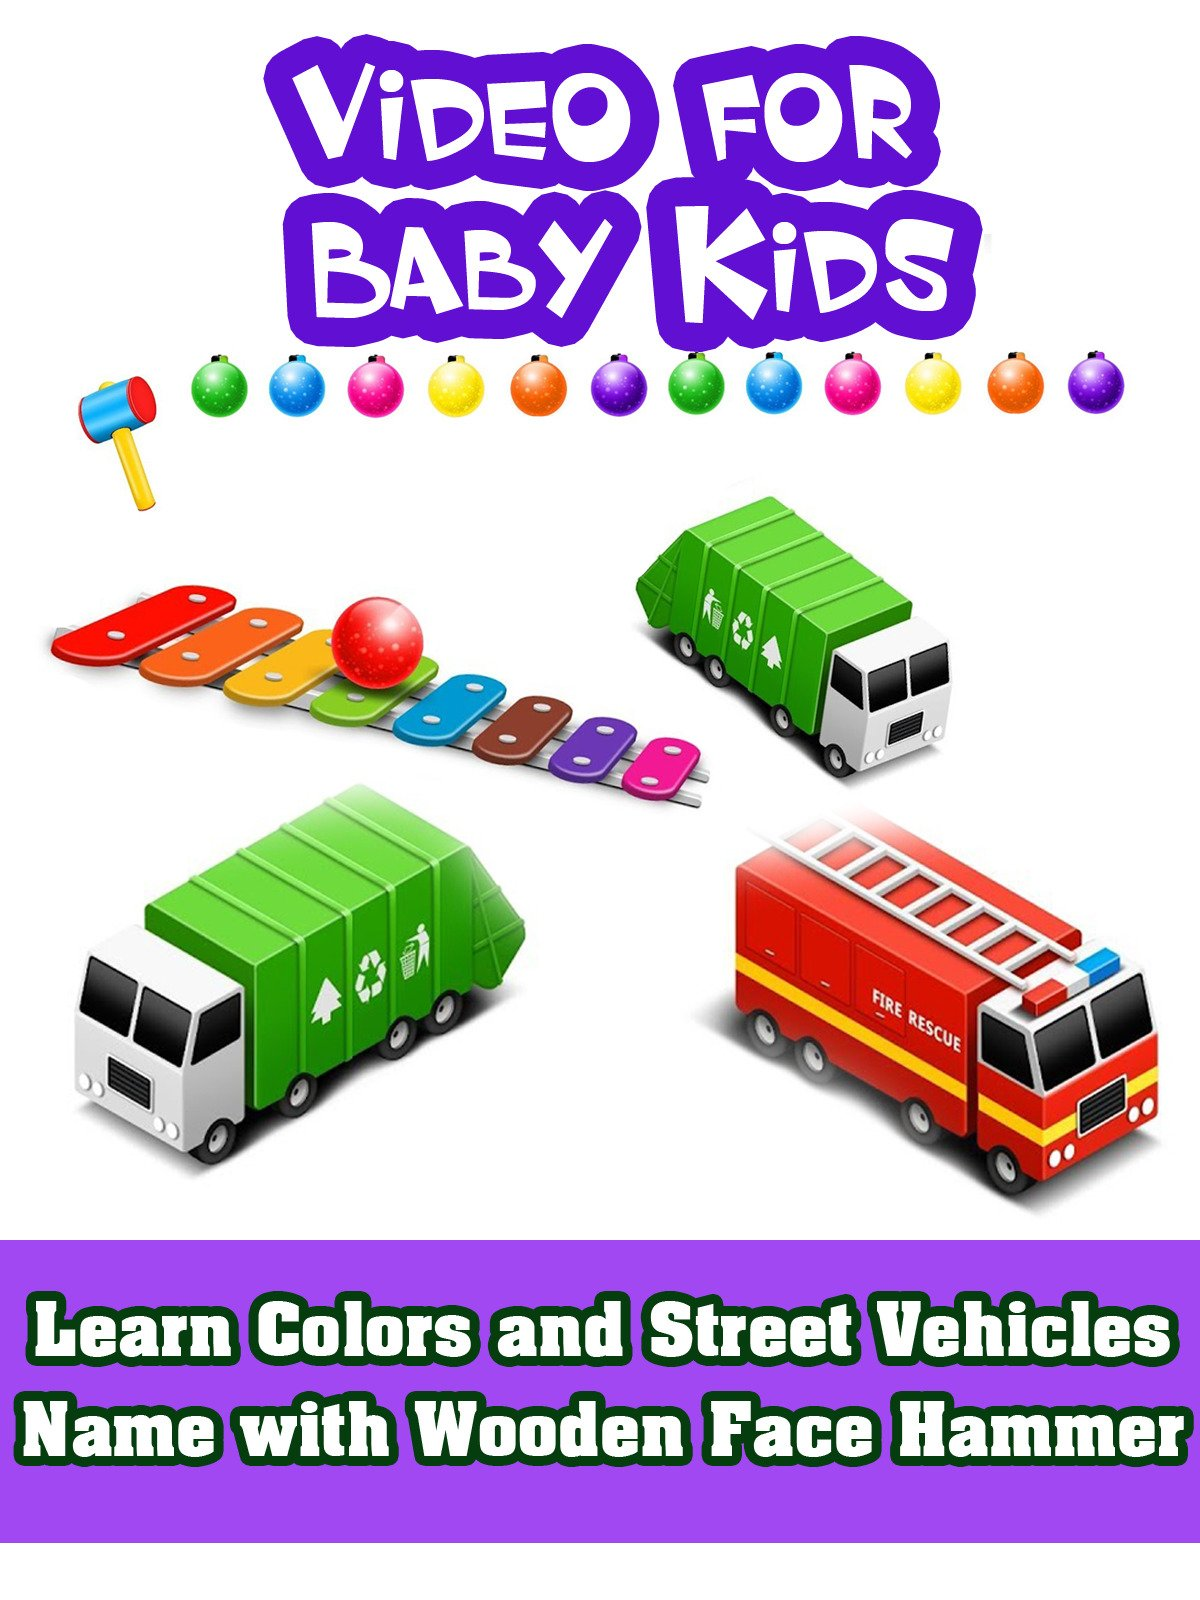 Learn Colors and Street Vehicles Name with Wooden Face Hammer